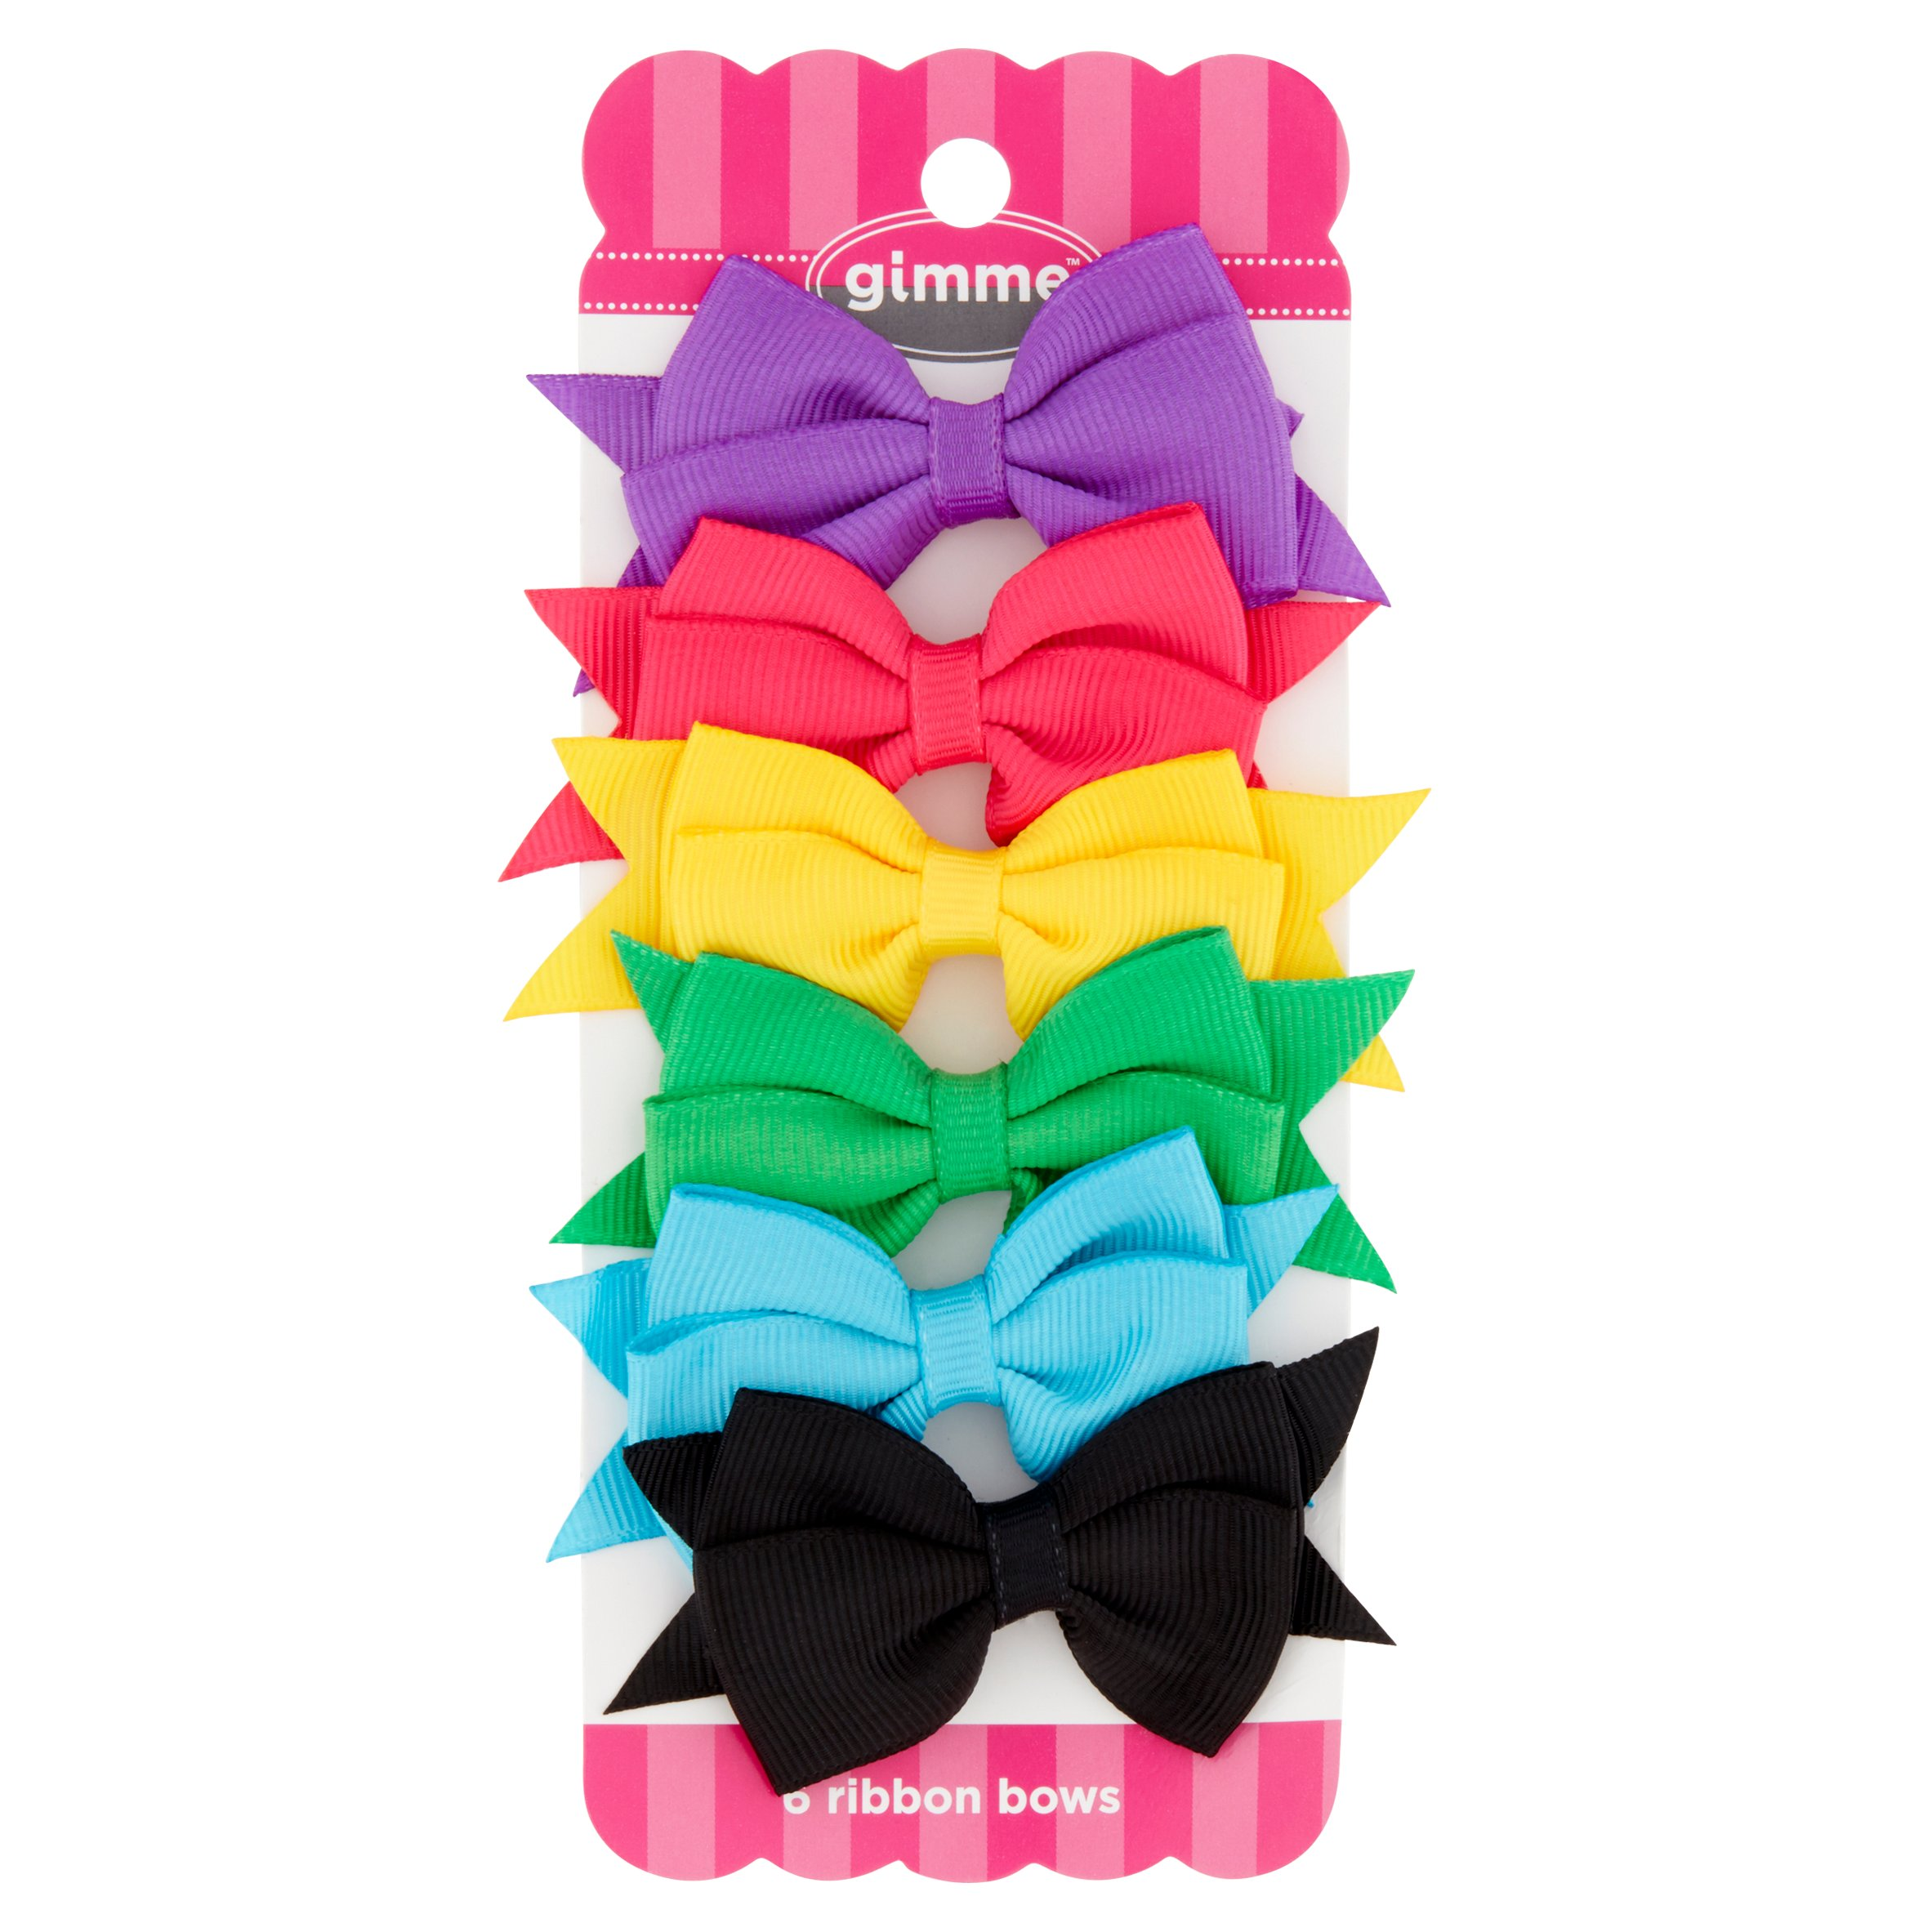 (2 Pack) Gimme Ribbon Bows, 6 count